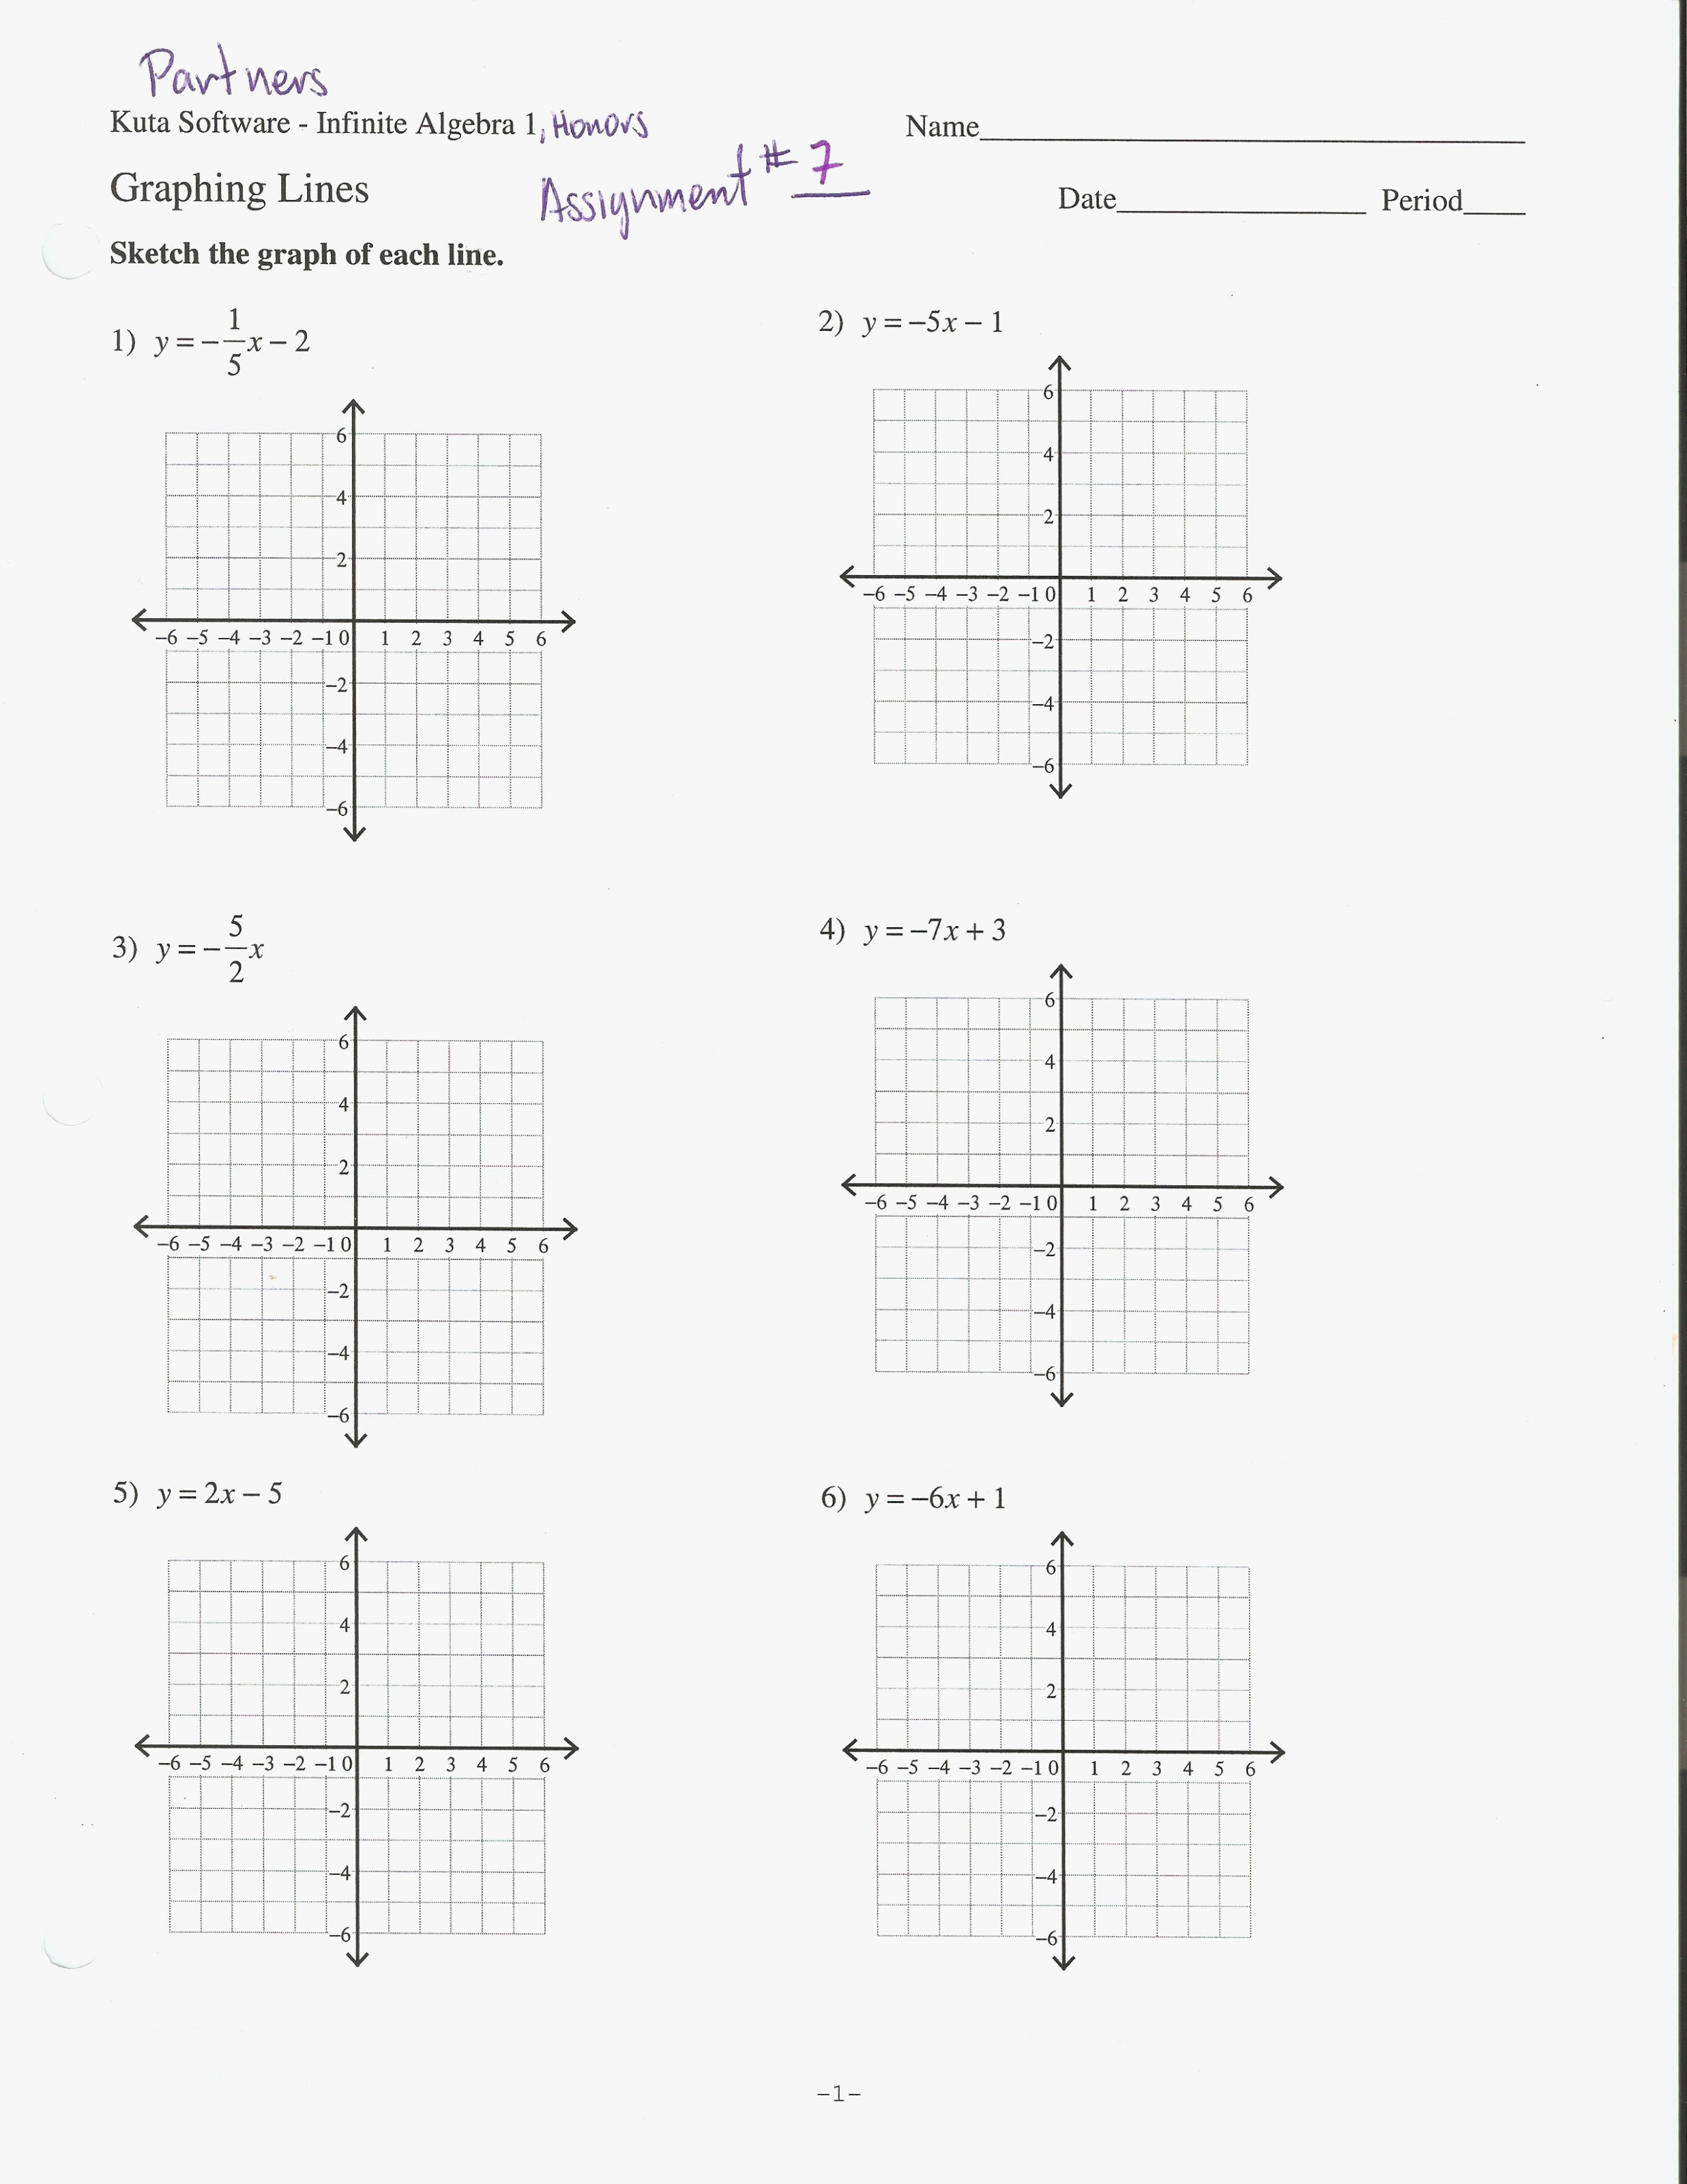 Writing Equations From Graphs Worksheet Unique 15 Disadvantages How to